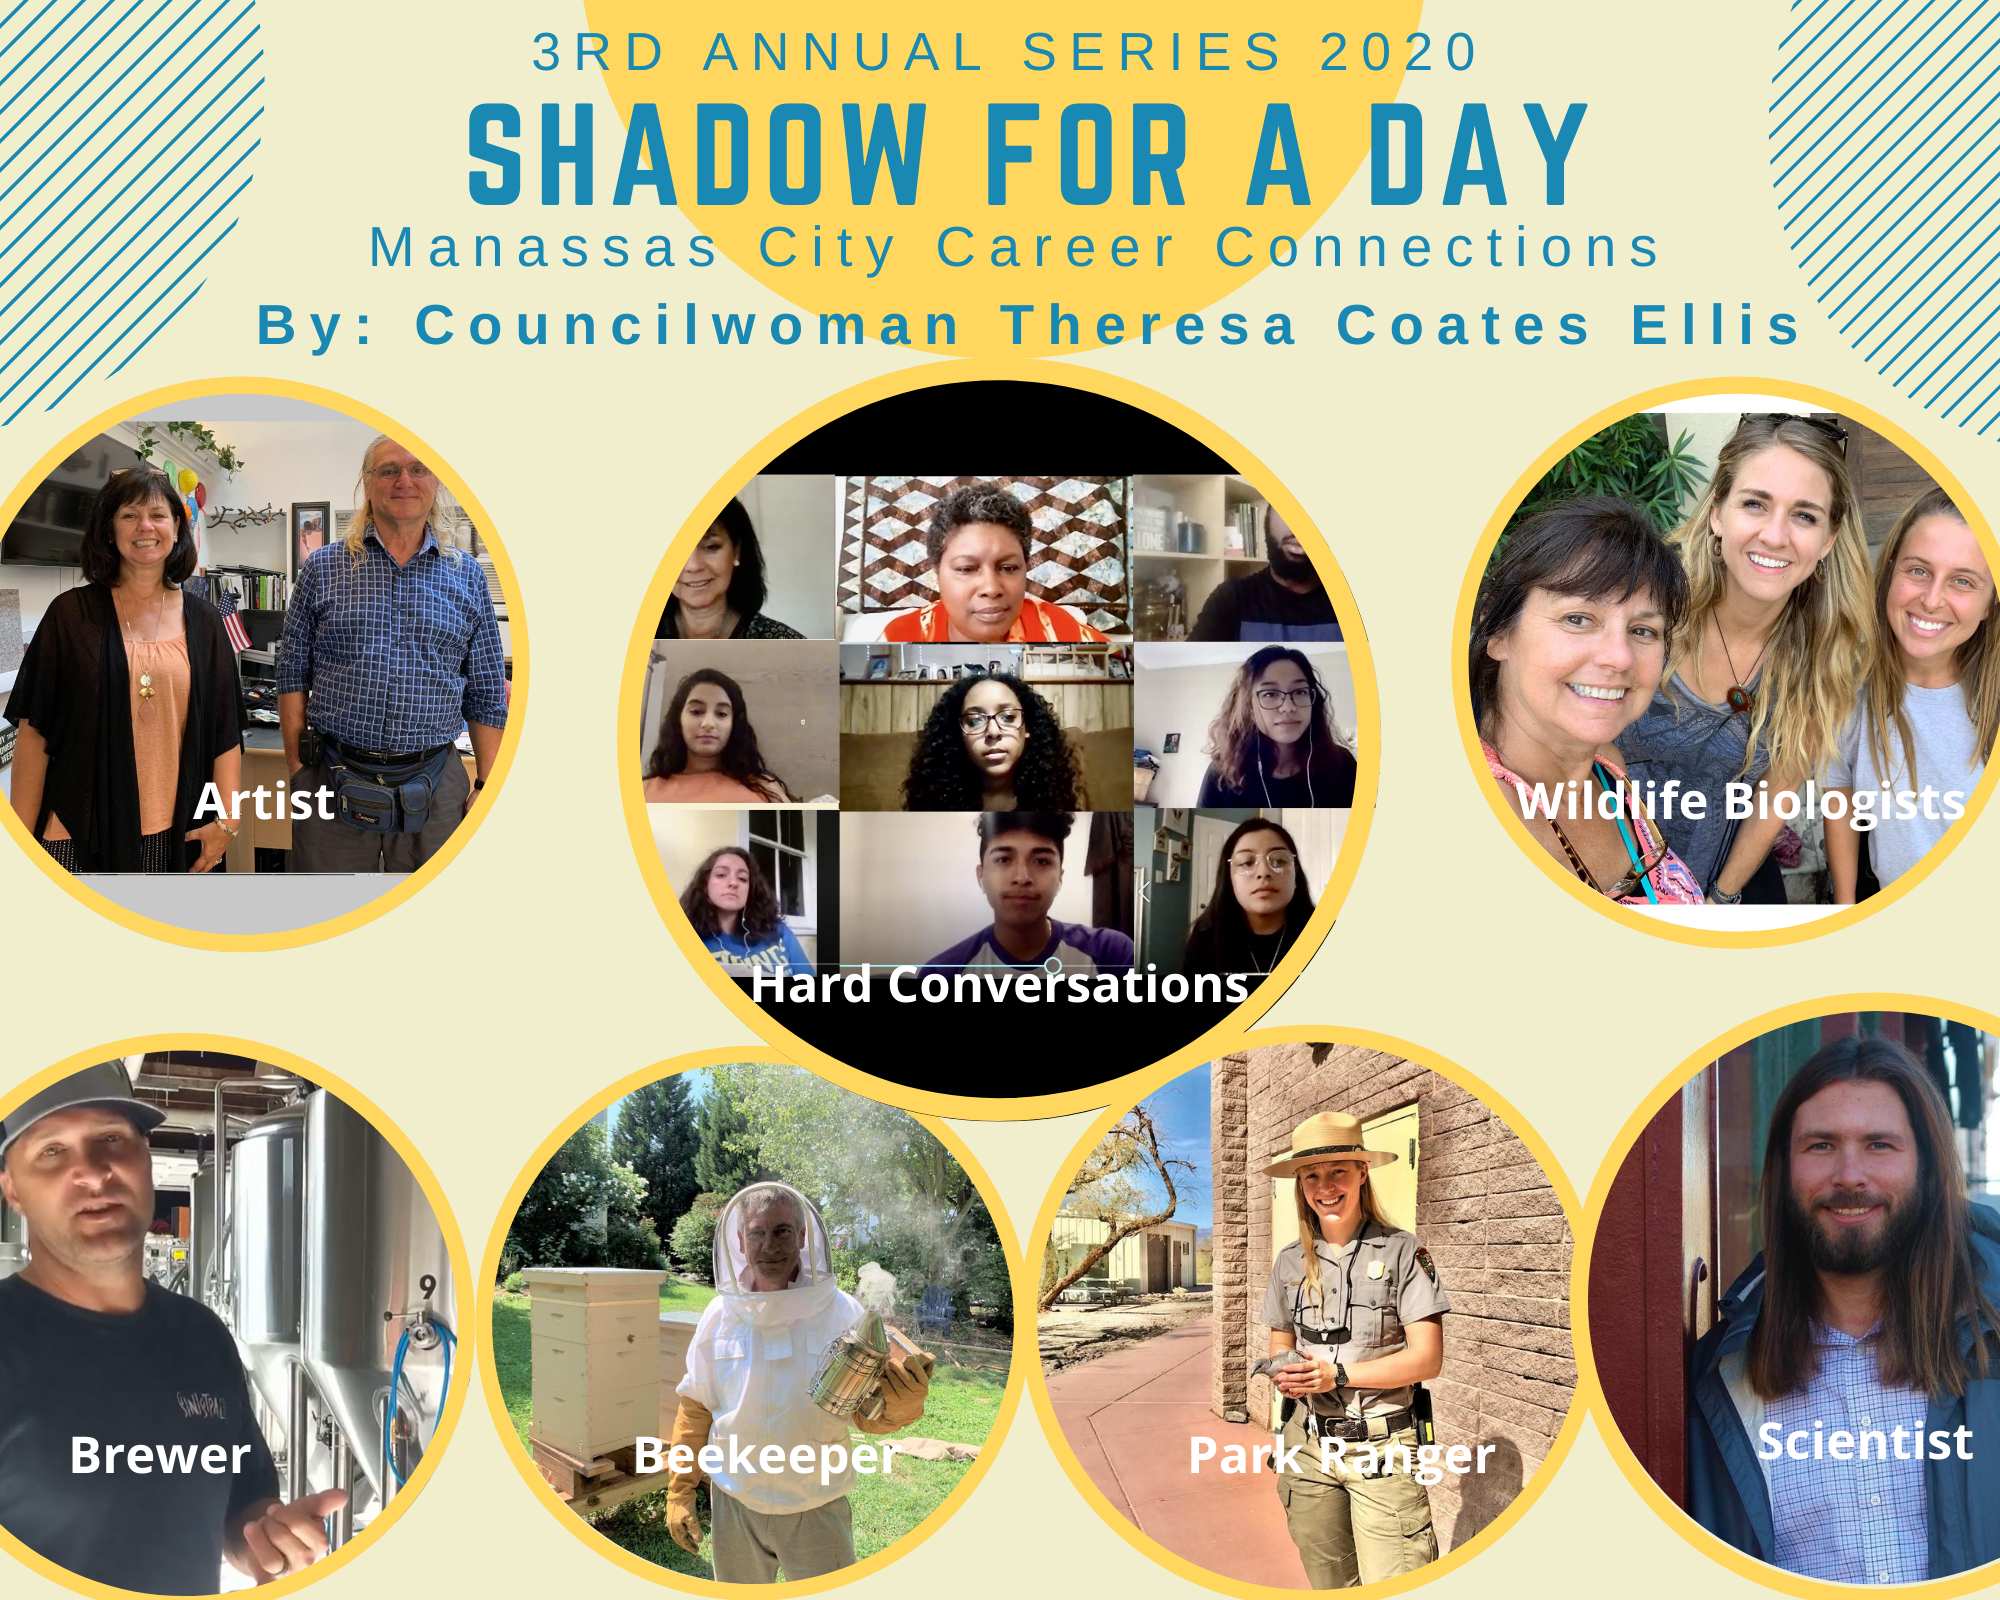 Shadow for a Day 2020